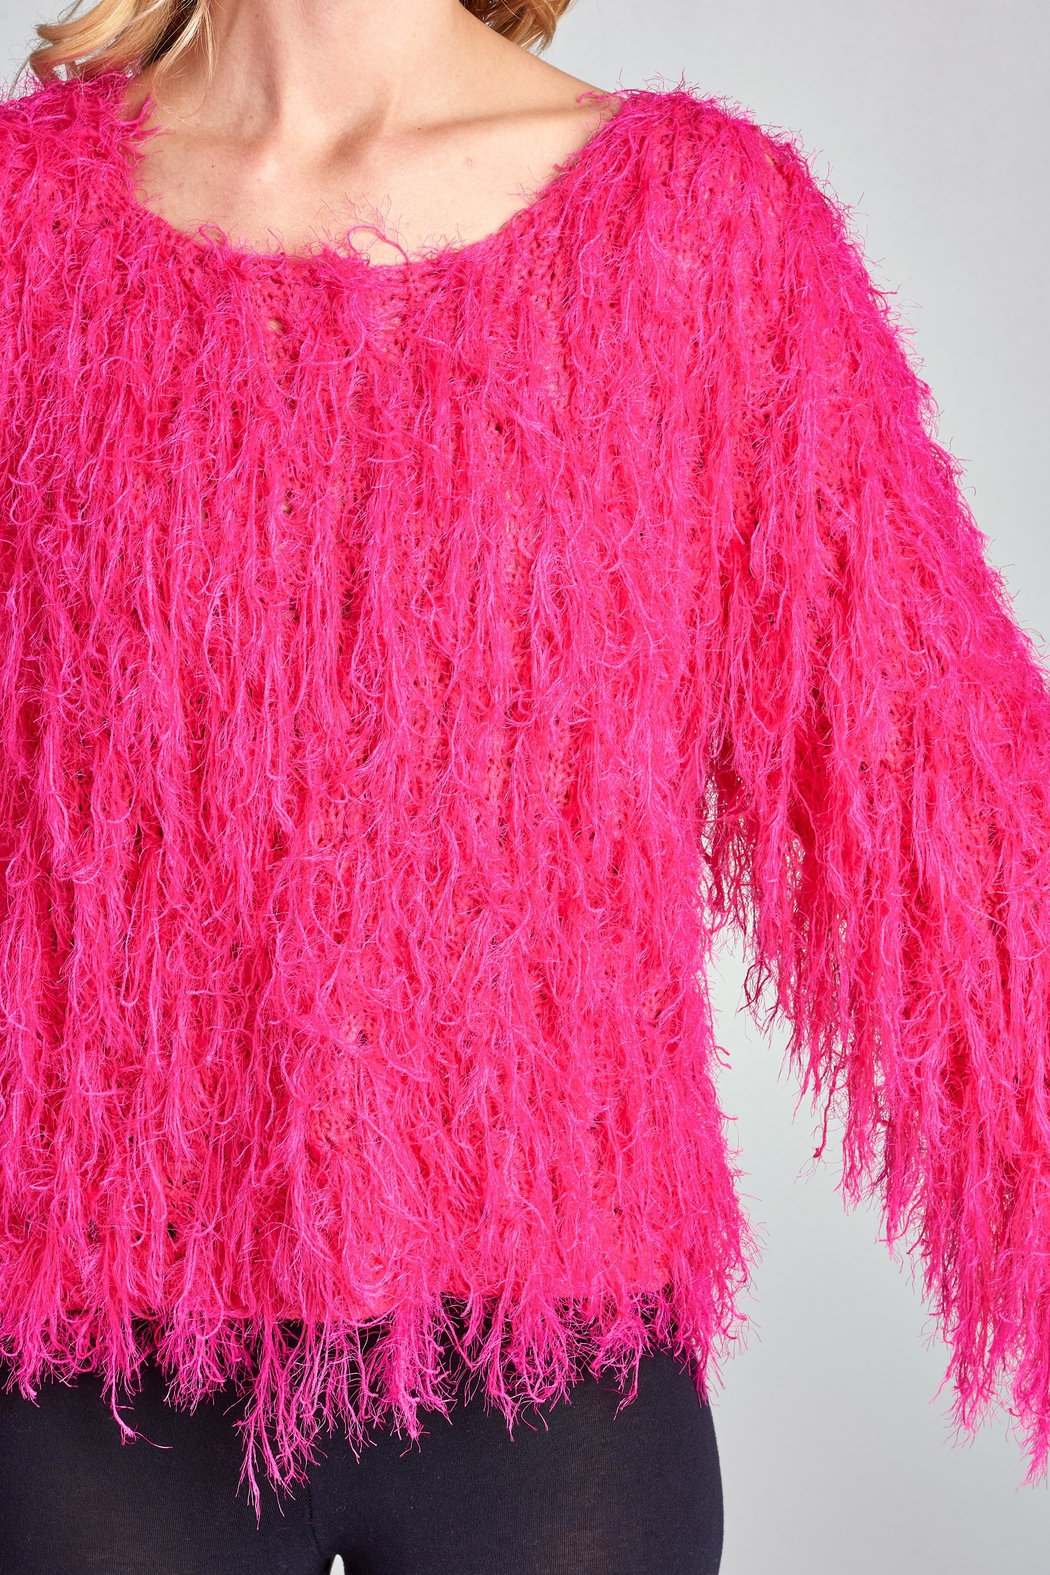 Racine Pink Fur Sweater - Back Cropped Image